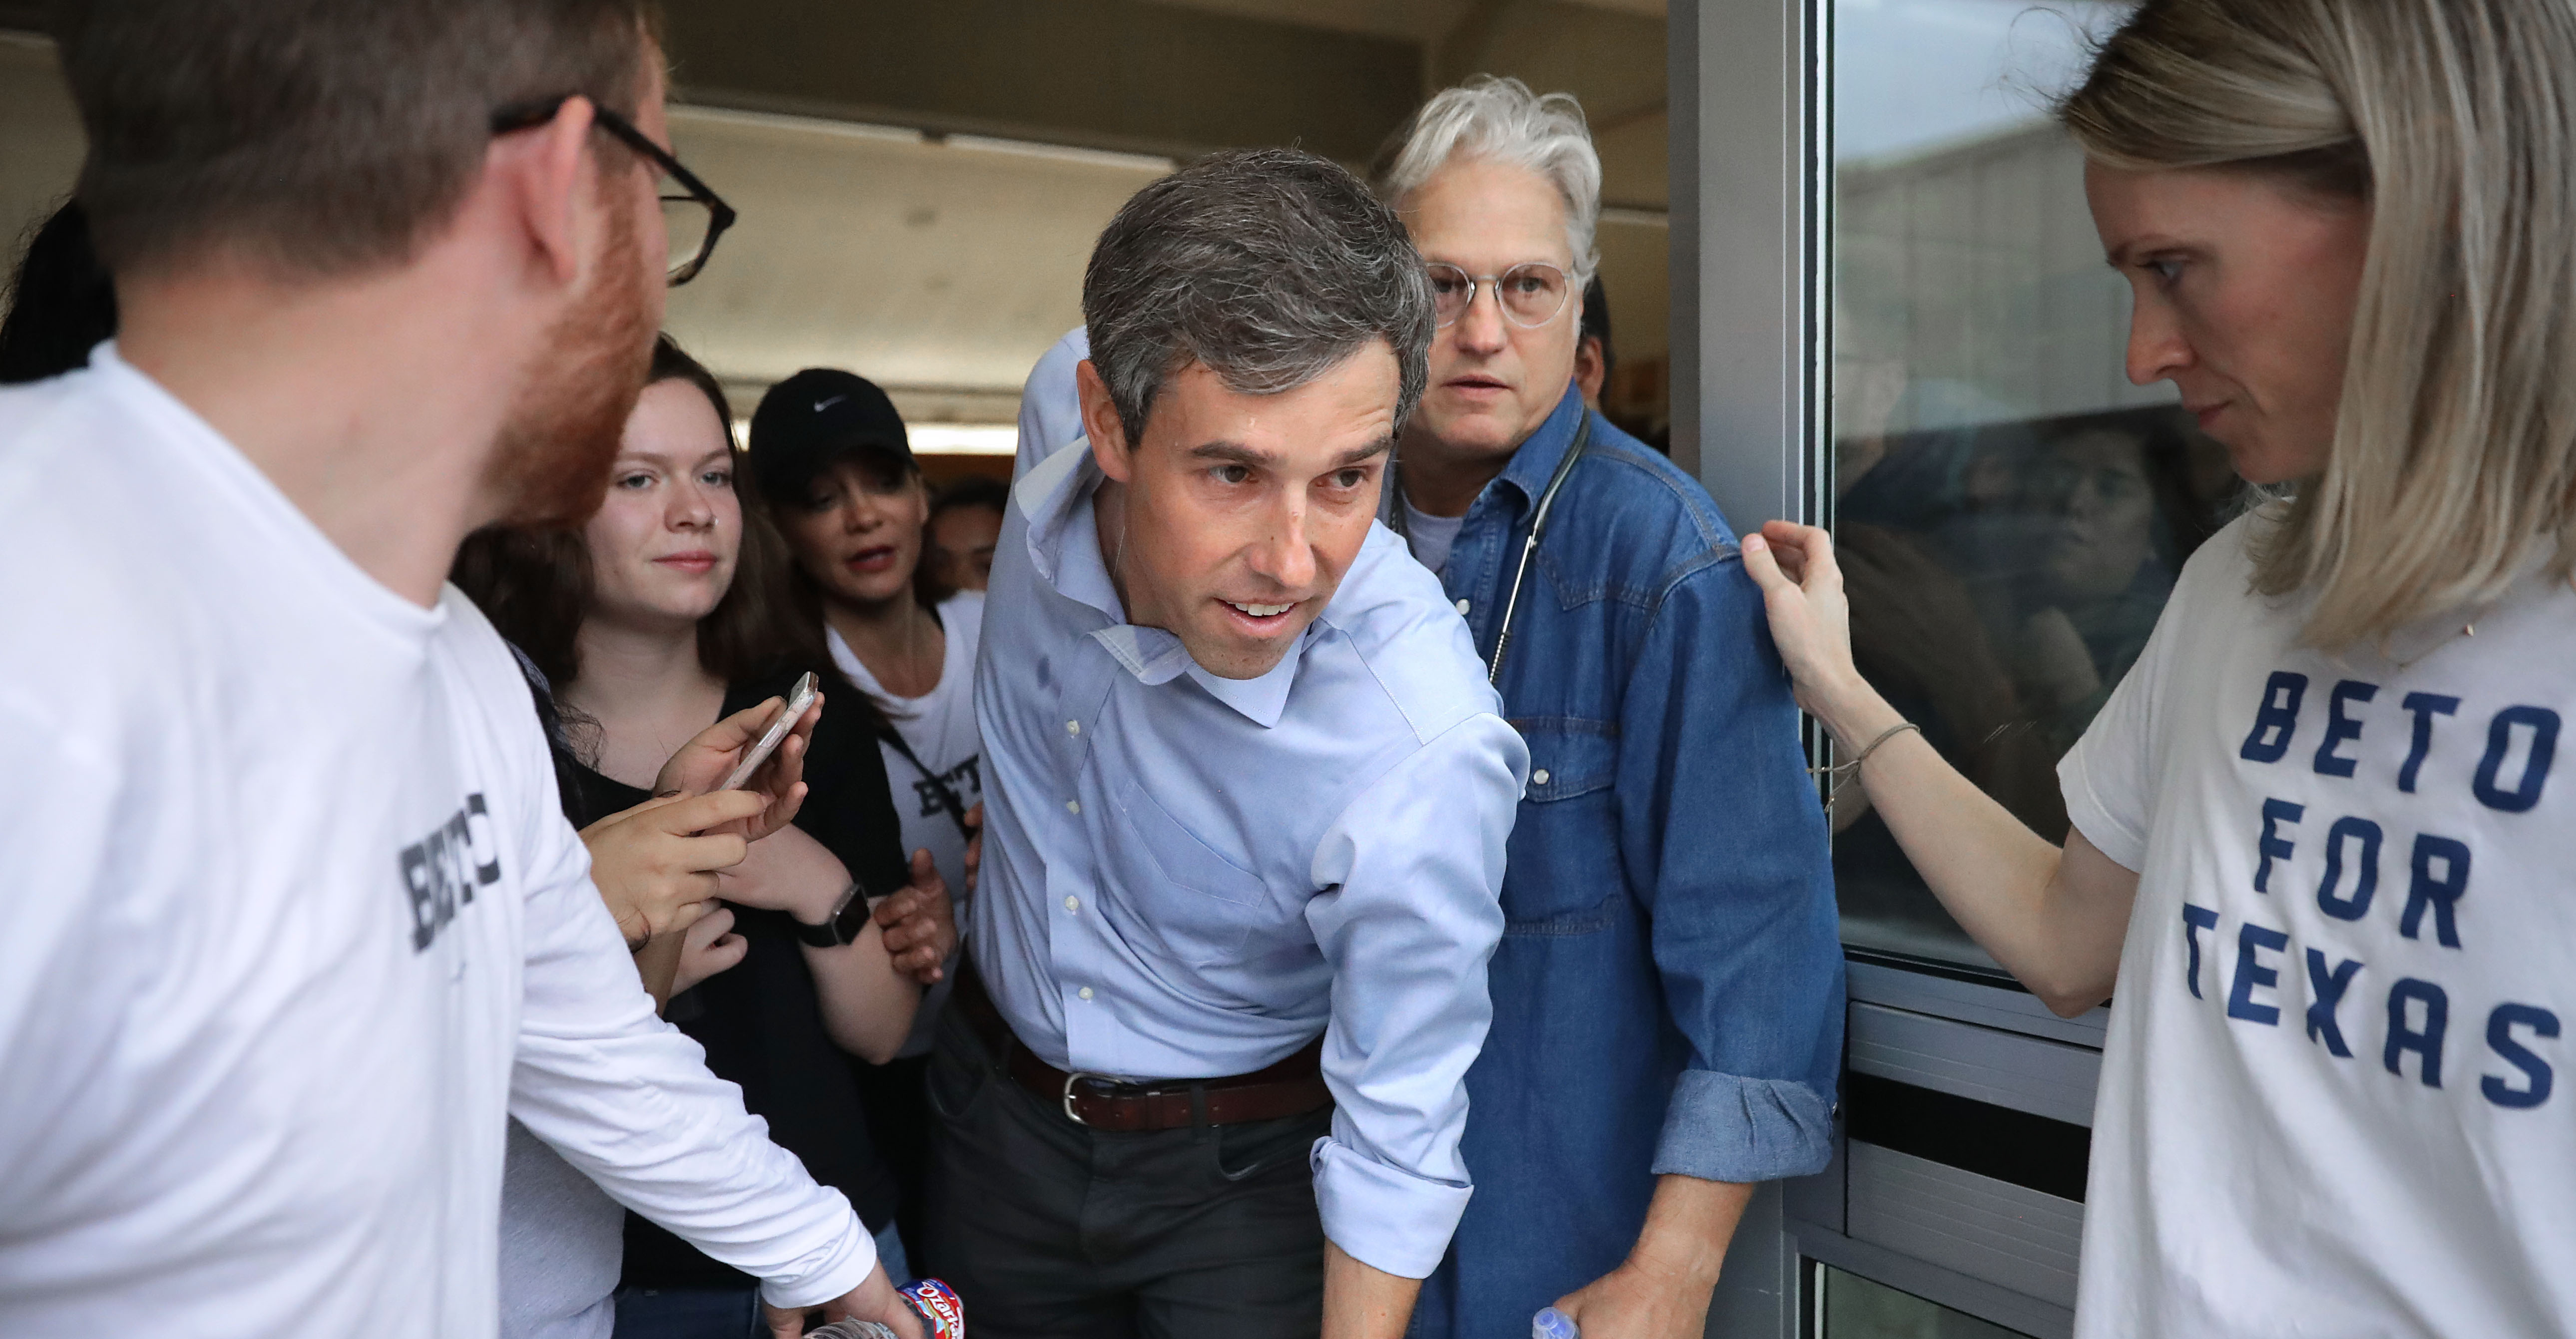 WACO, TEXAS - OCTOBER 31: U.S. Senate candidate Rep. Beto O'Rourke (D-TX) (C) squeezes his way out of a crowded hall during a campaign stop at the John Knox Memorial Center at the Texas Ranger Hall of Fame October 31, 2018 in Waco, Texas. With less than a week before Election Day, O'Rourke is driving across the state in his race against incumbent Sen. Ted Cruz (R-TX). (Photo by Chip Somodevilla/Getty Images)